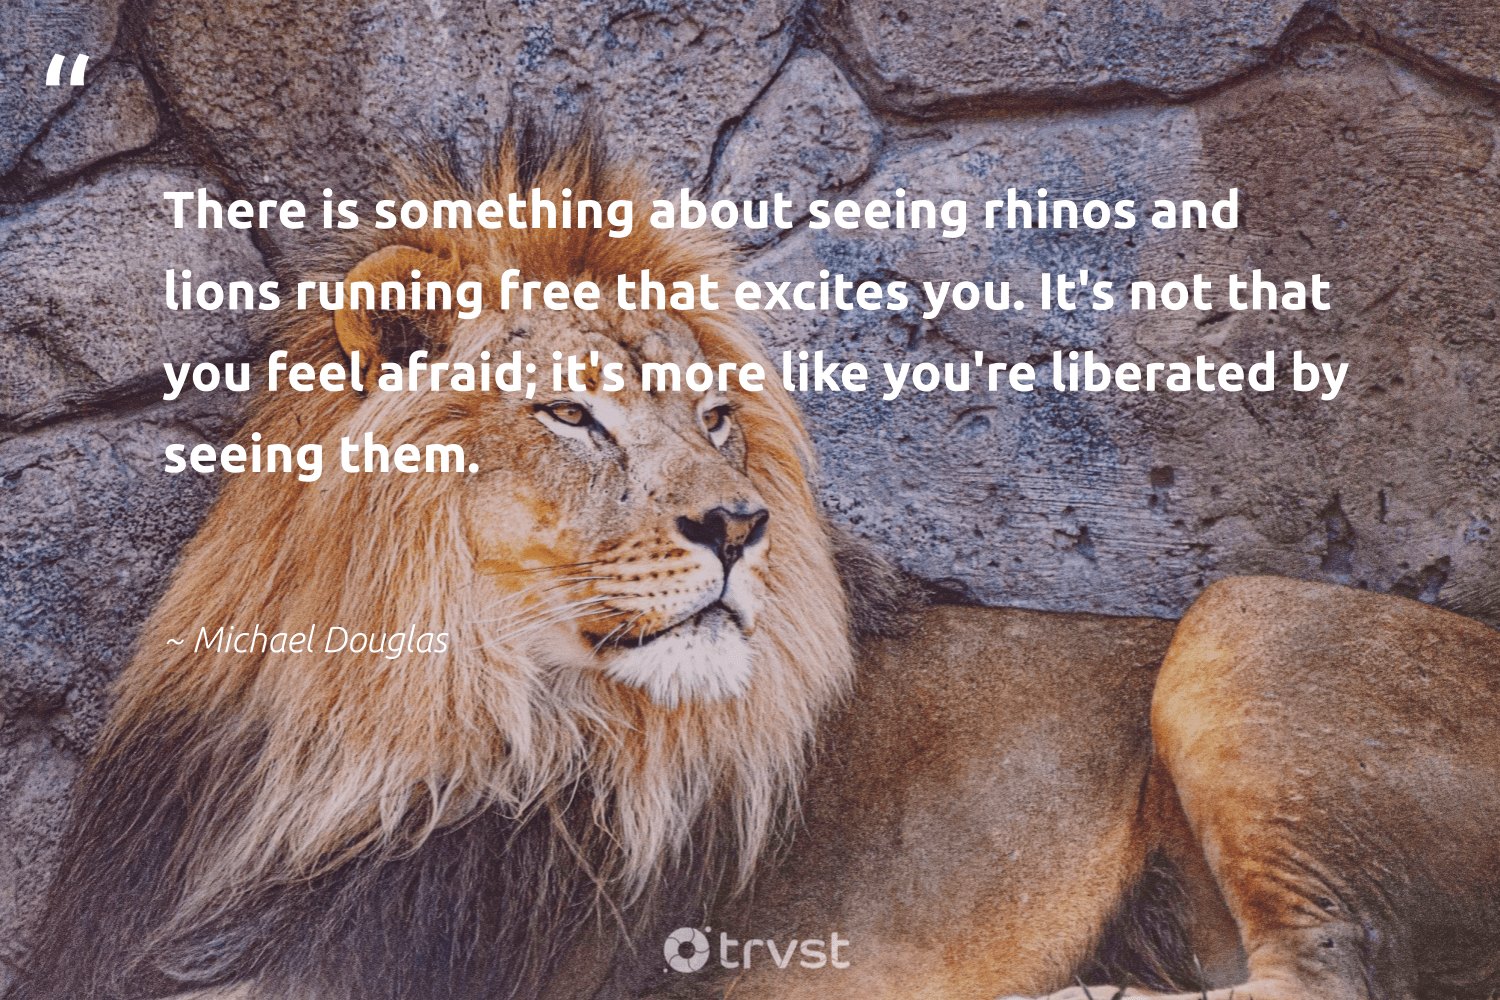 """""""There is something about seeing rhinos and lions running free that excites you. It's not that you feel afraid; it's more like you're liberated by seeing them.""""  - Michael Douglas #trvst #quotes #lions #protectnature #beinspired #amazingworld #dogood #wildlifeprotection #gogreen #wild #impact #perfectnature"""